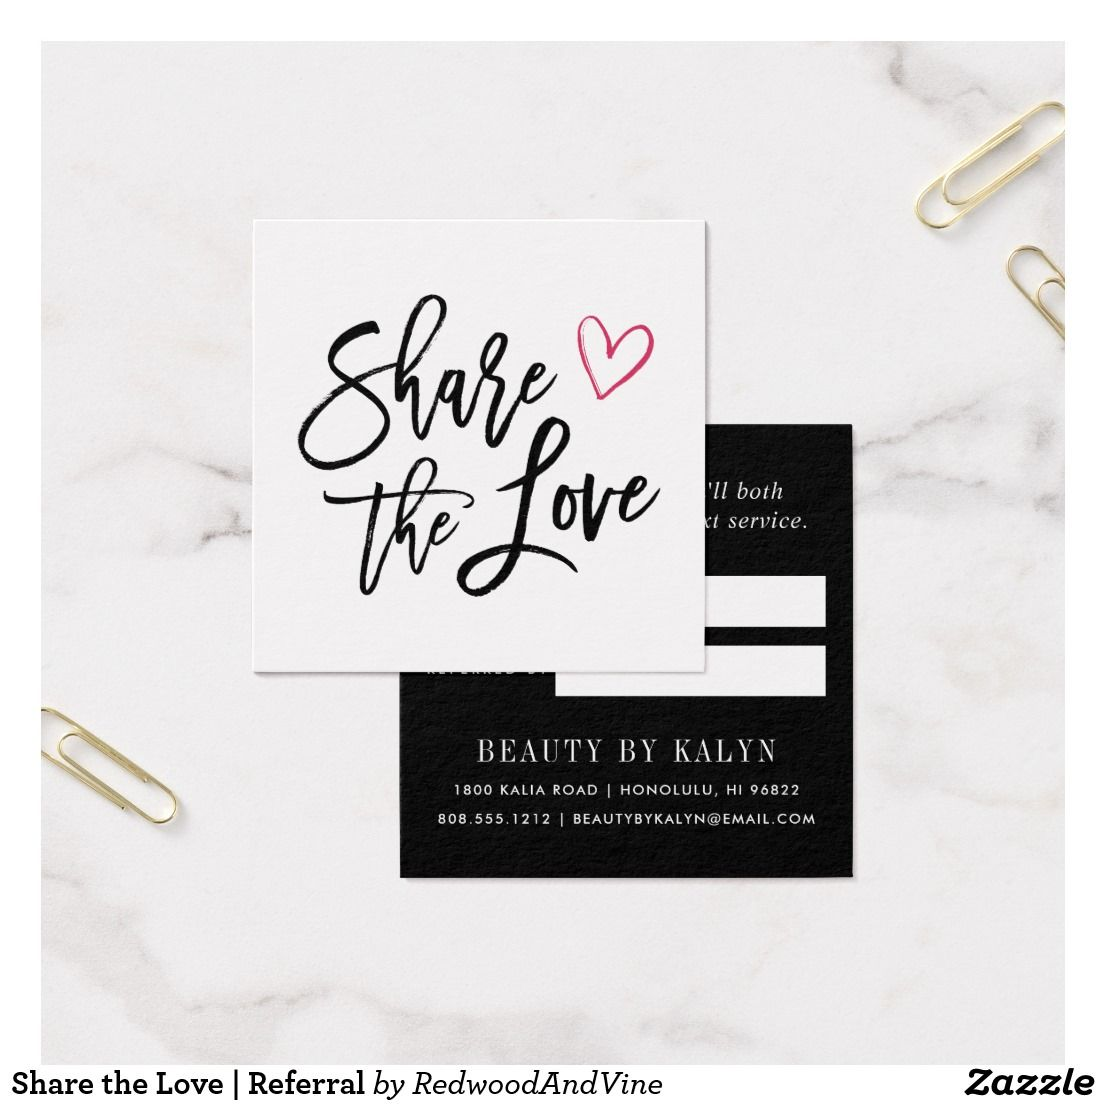 Share the love referral square business card business business cards reheart Image collections